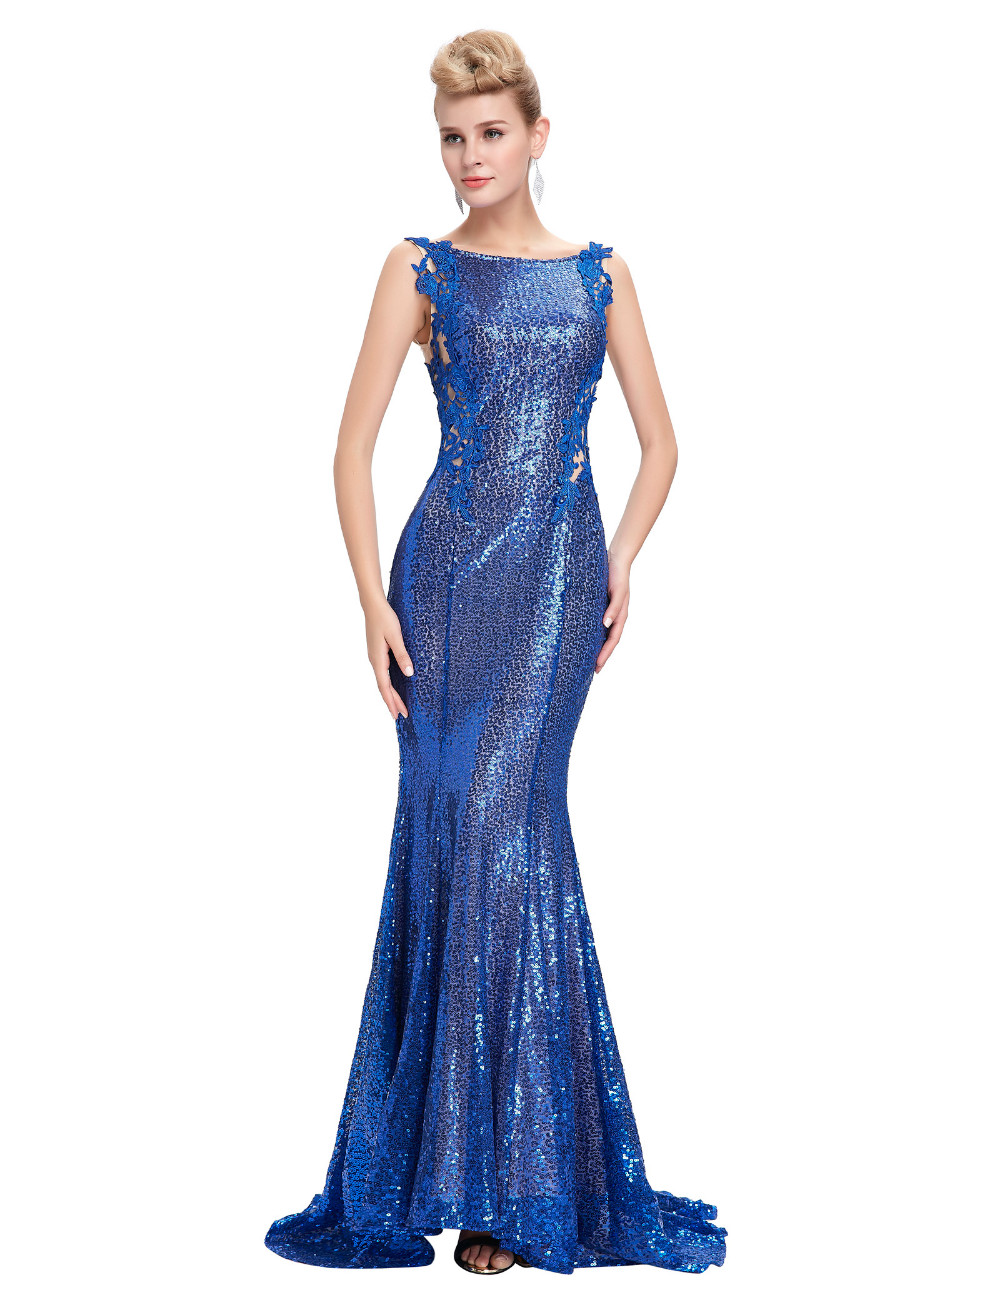 Kate Kasin Mermaid Bridesmaid Dresses Long Dress for Weddings Party Gown 2017 Grey Blue Black Sequin Bridesmaid Dress 0072 5